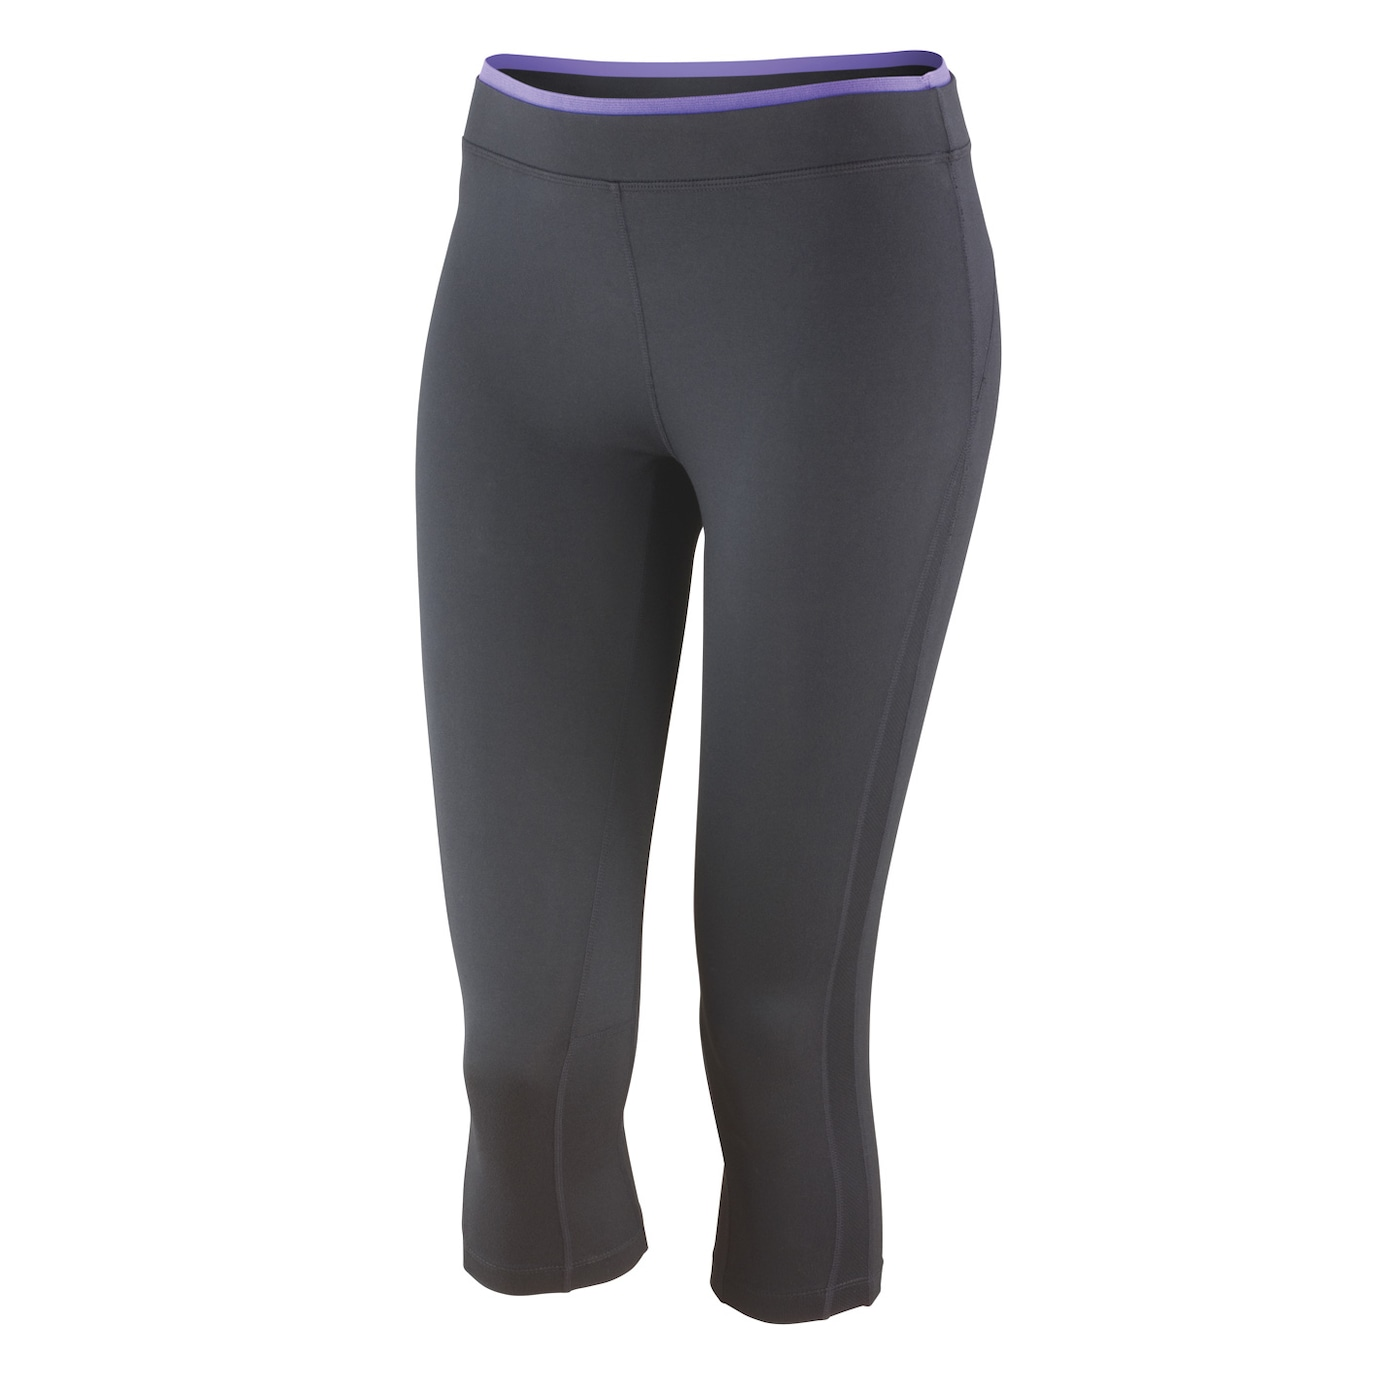 Women's 3/4 leggings Spiro FITNESS